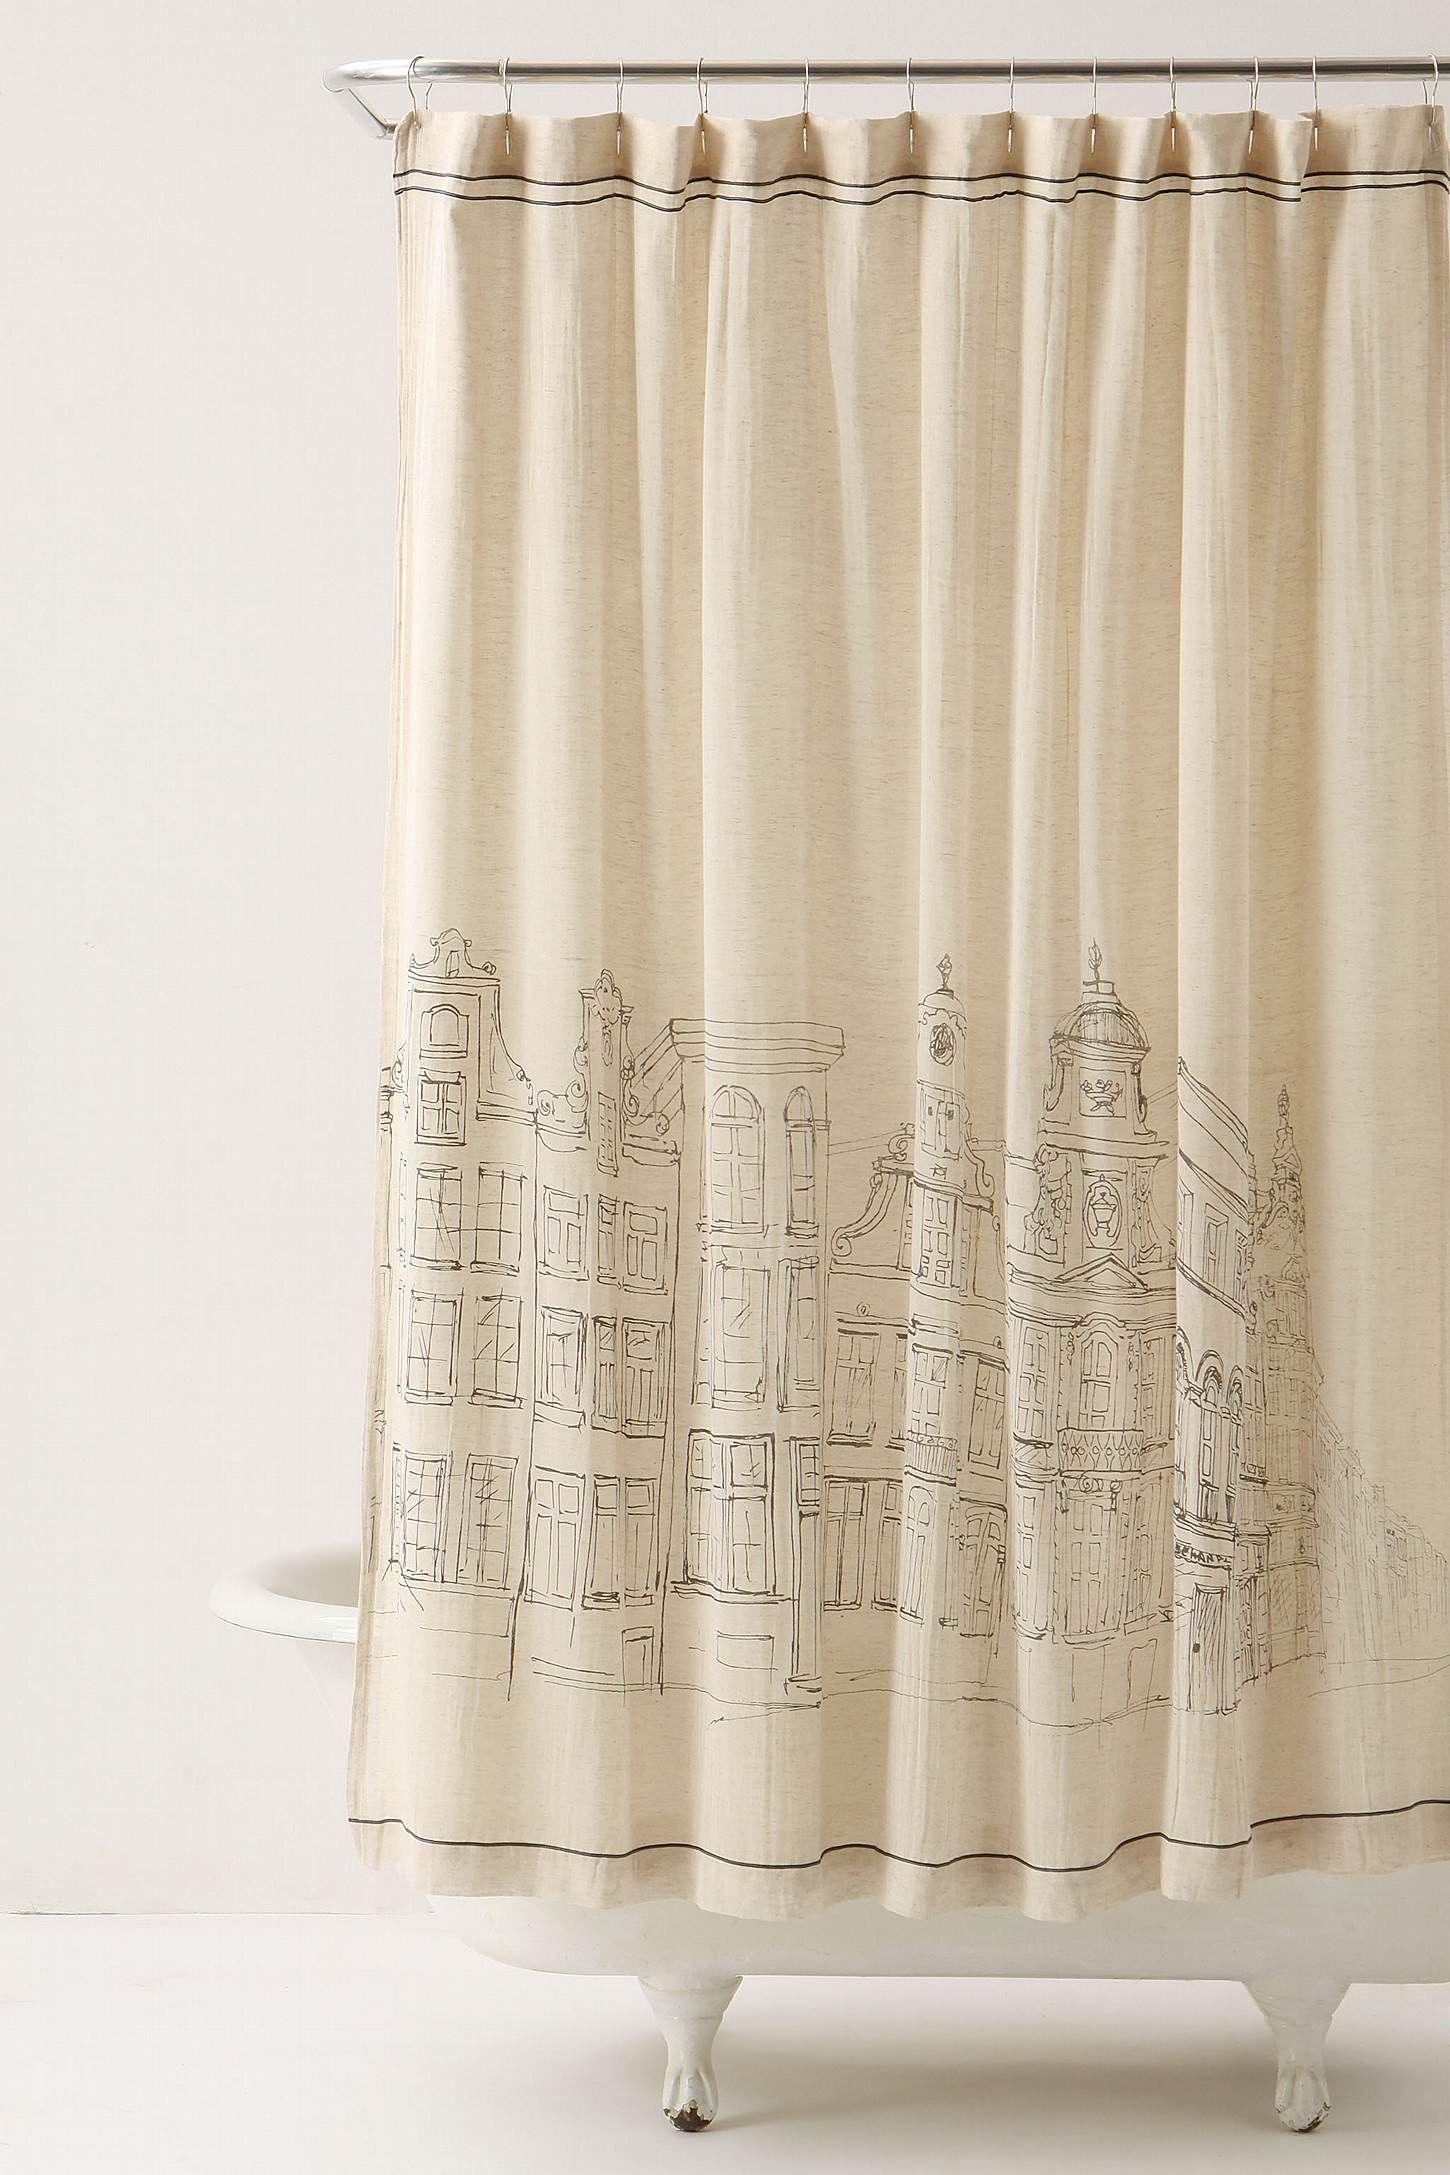 Building Outlines On Shower Curtain Great Diy Idea Grab A